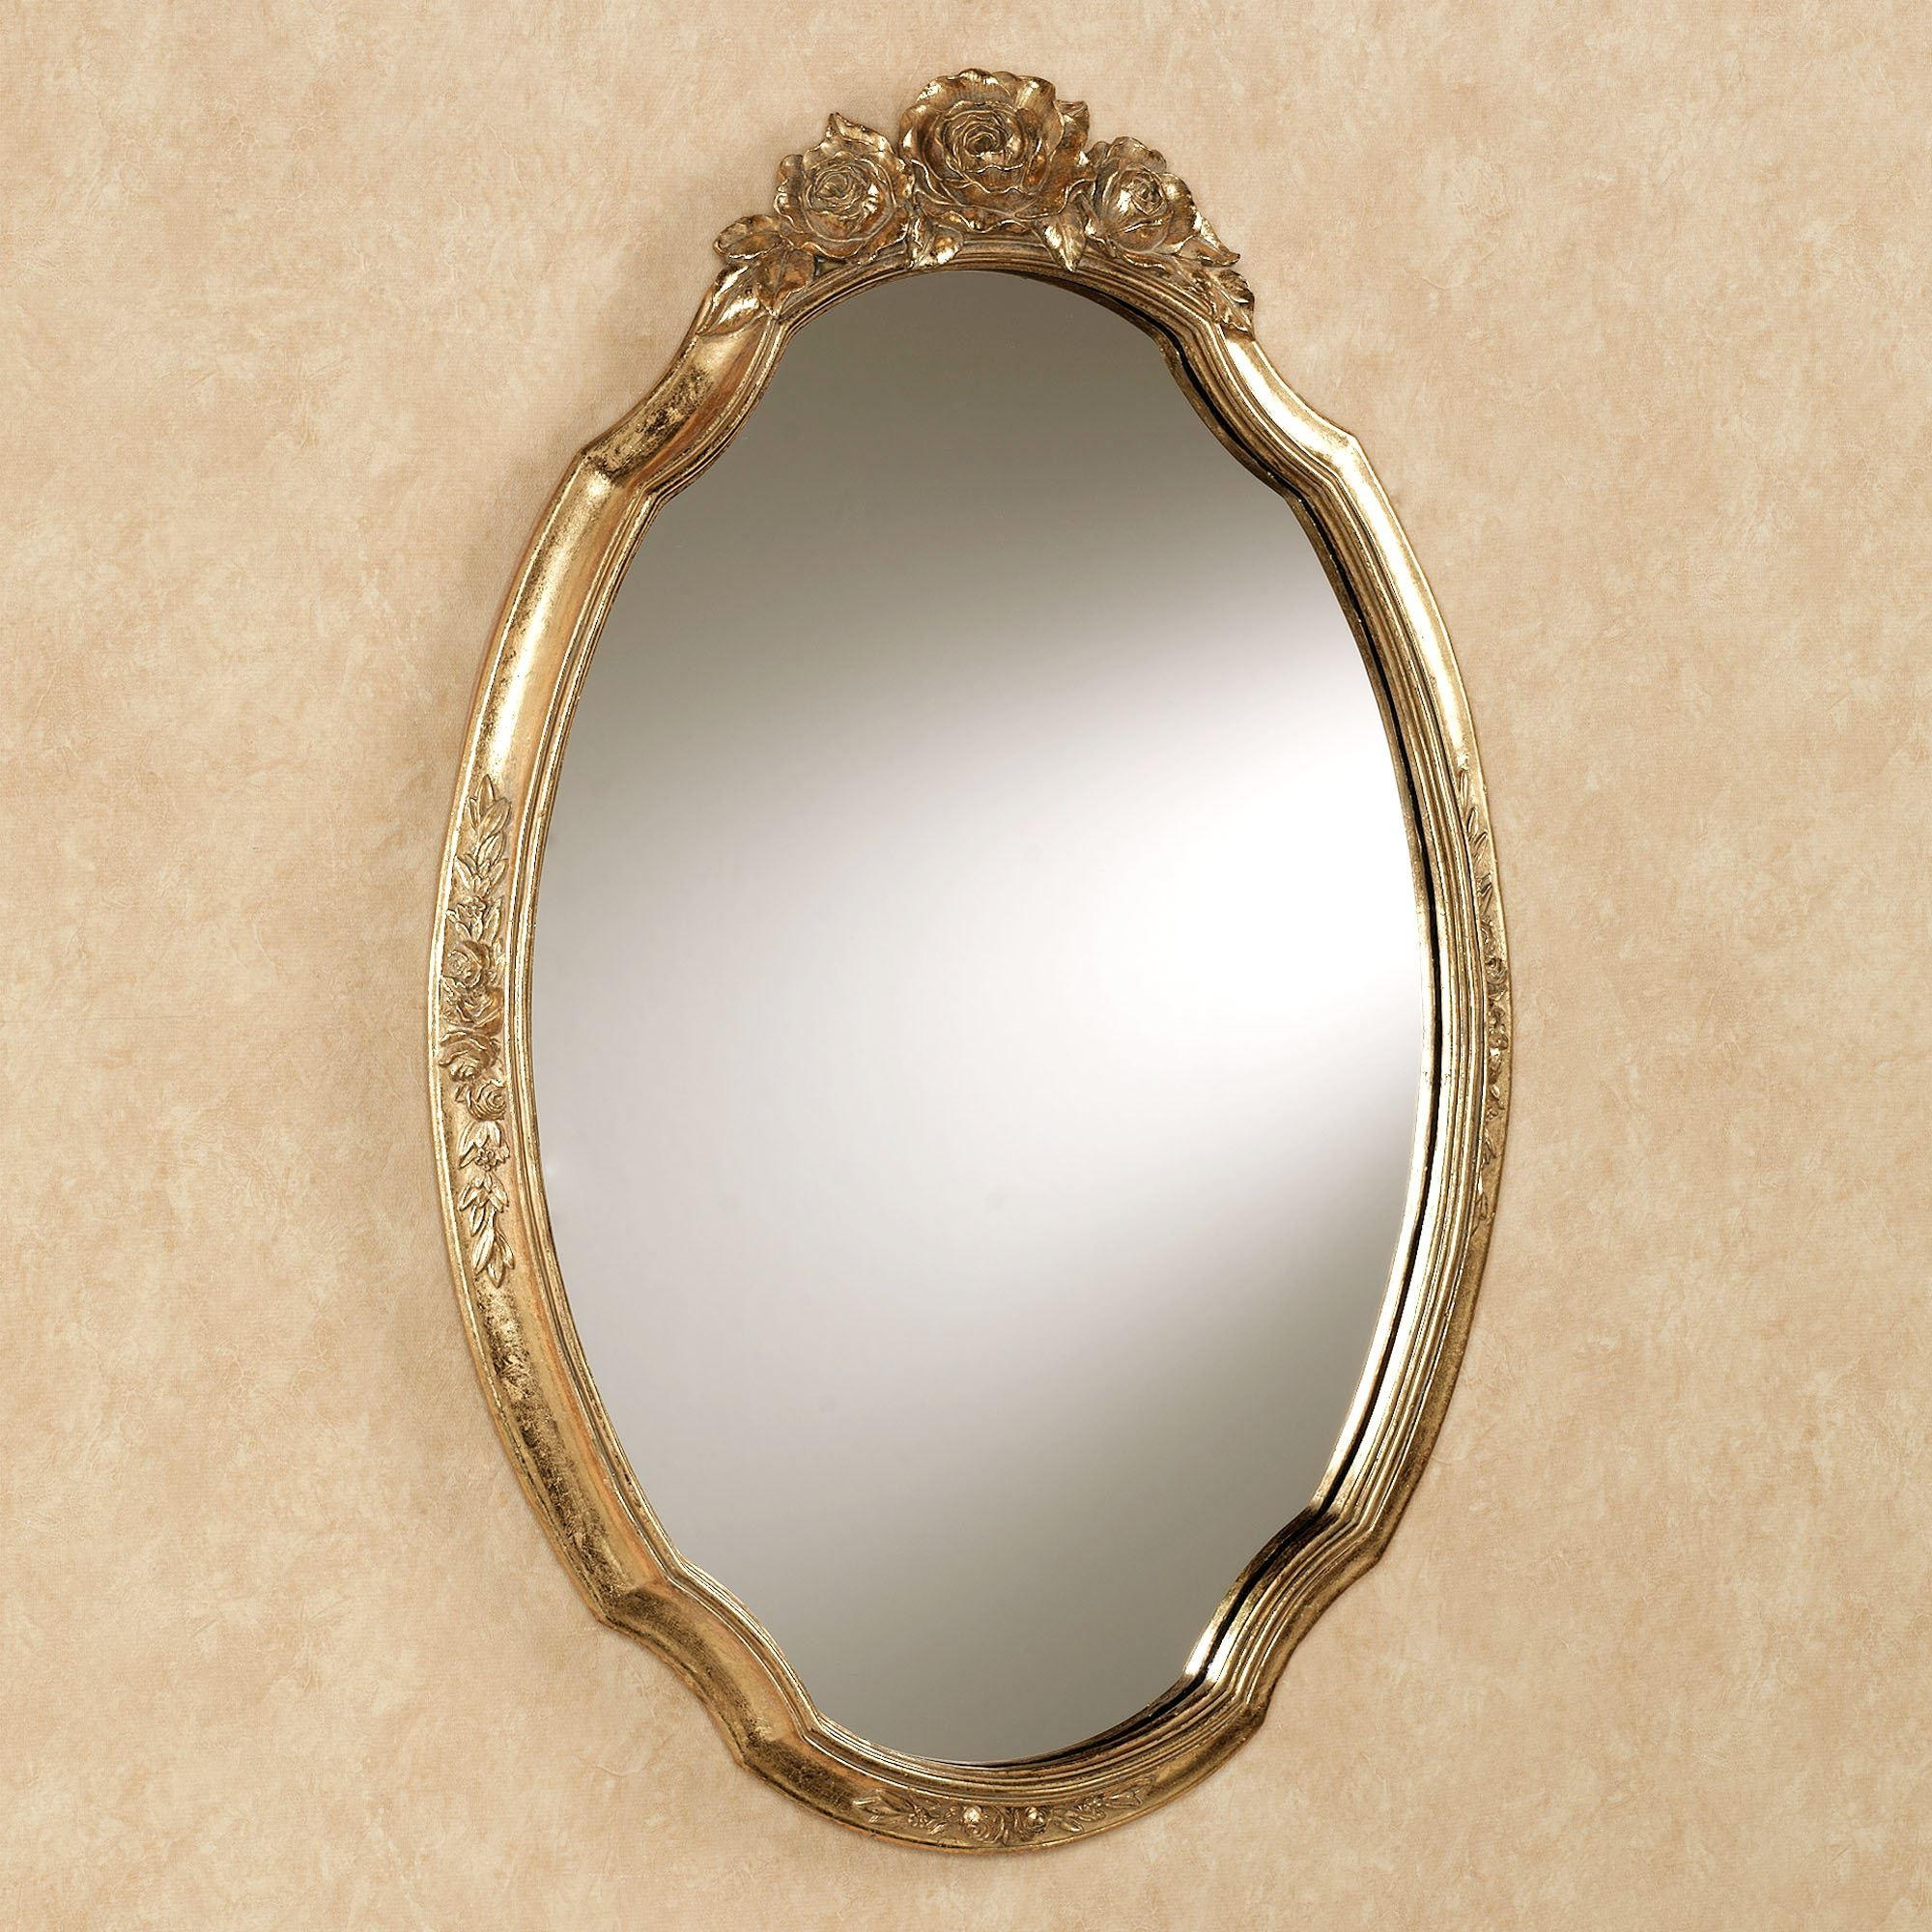 Jorah Rose Oval Wall Mirror Intended For Gold Wall Mirrors (Image 10 of 20)